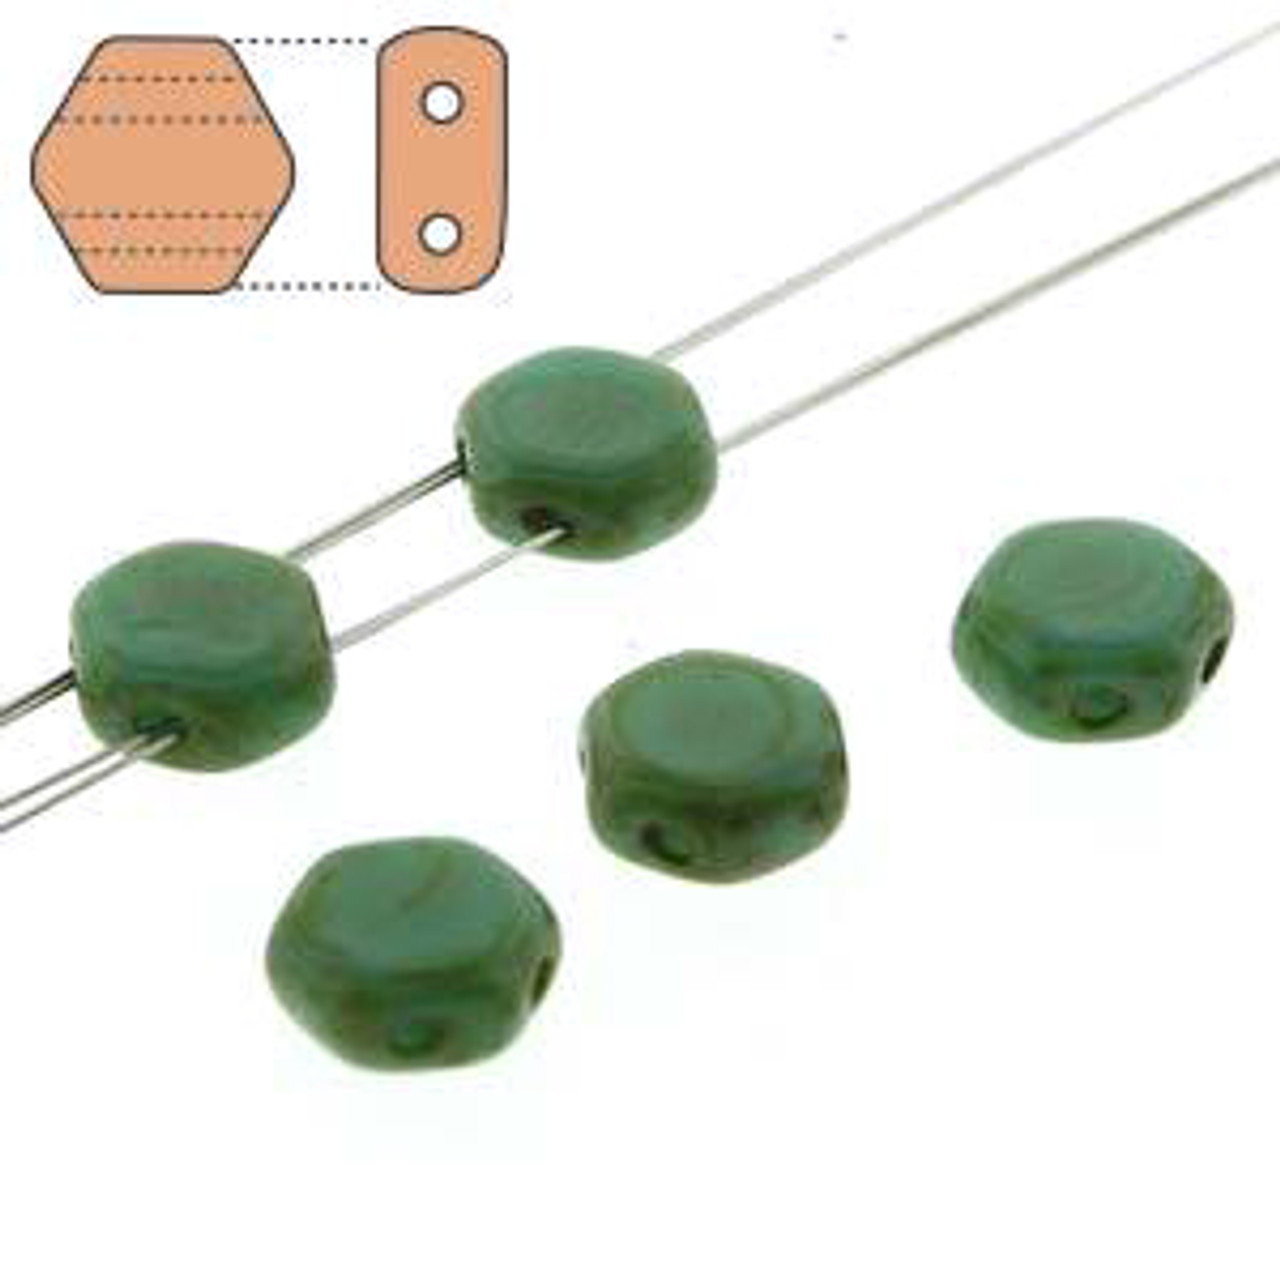 Honeycomb Beads (2-Hole)